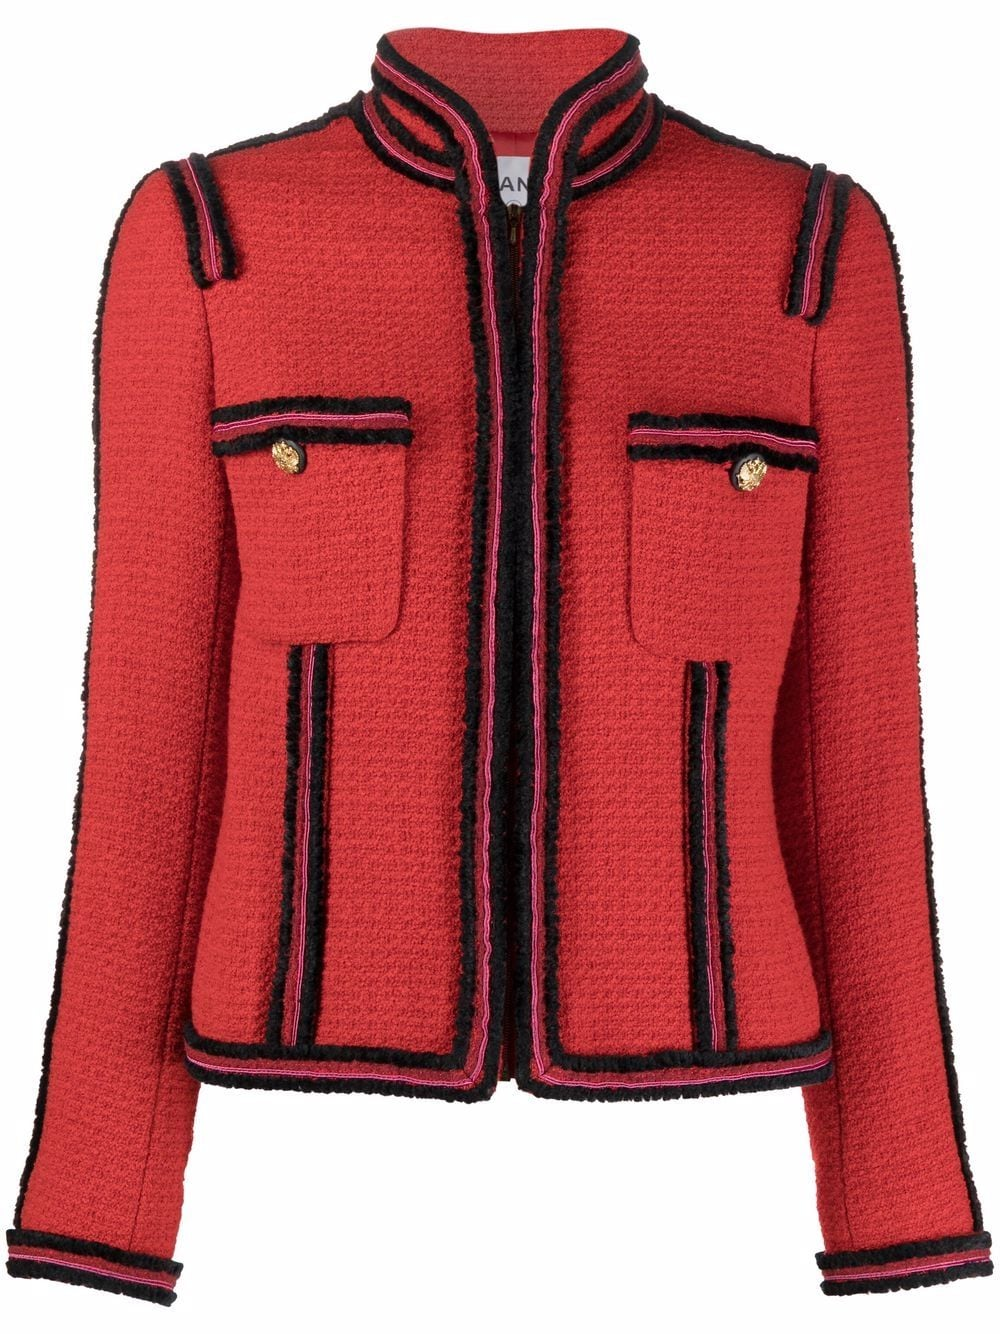 chanel-pre-owned-2009-single-breasted-tweed-jacket